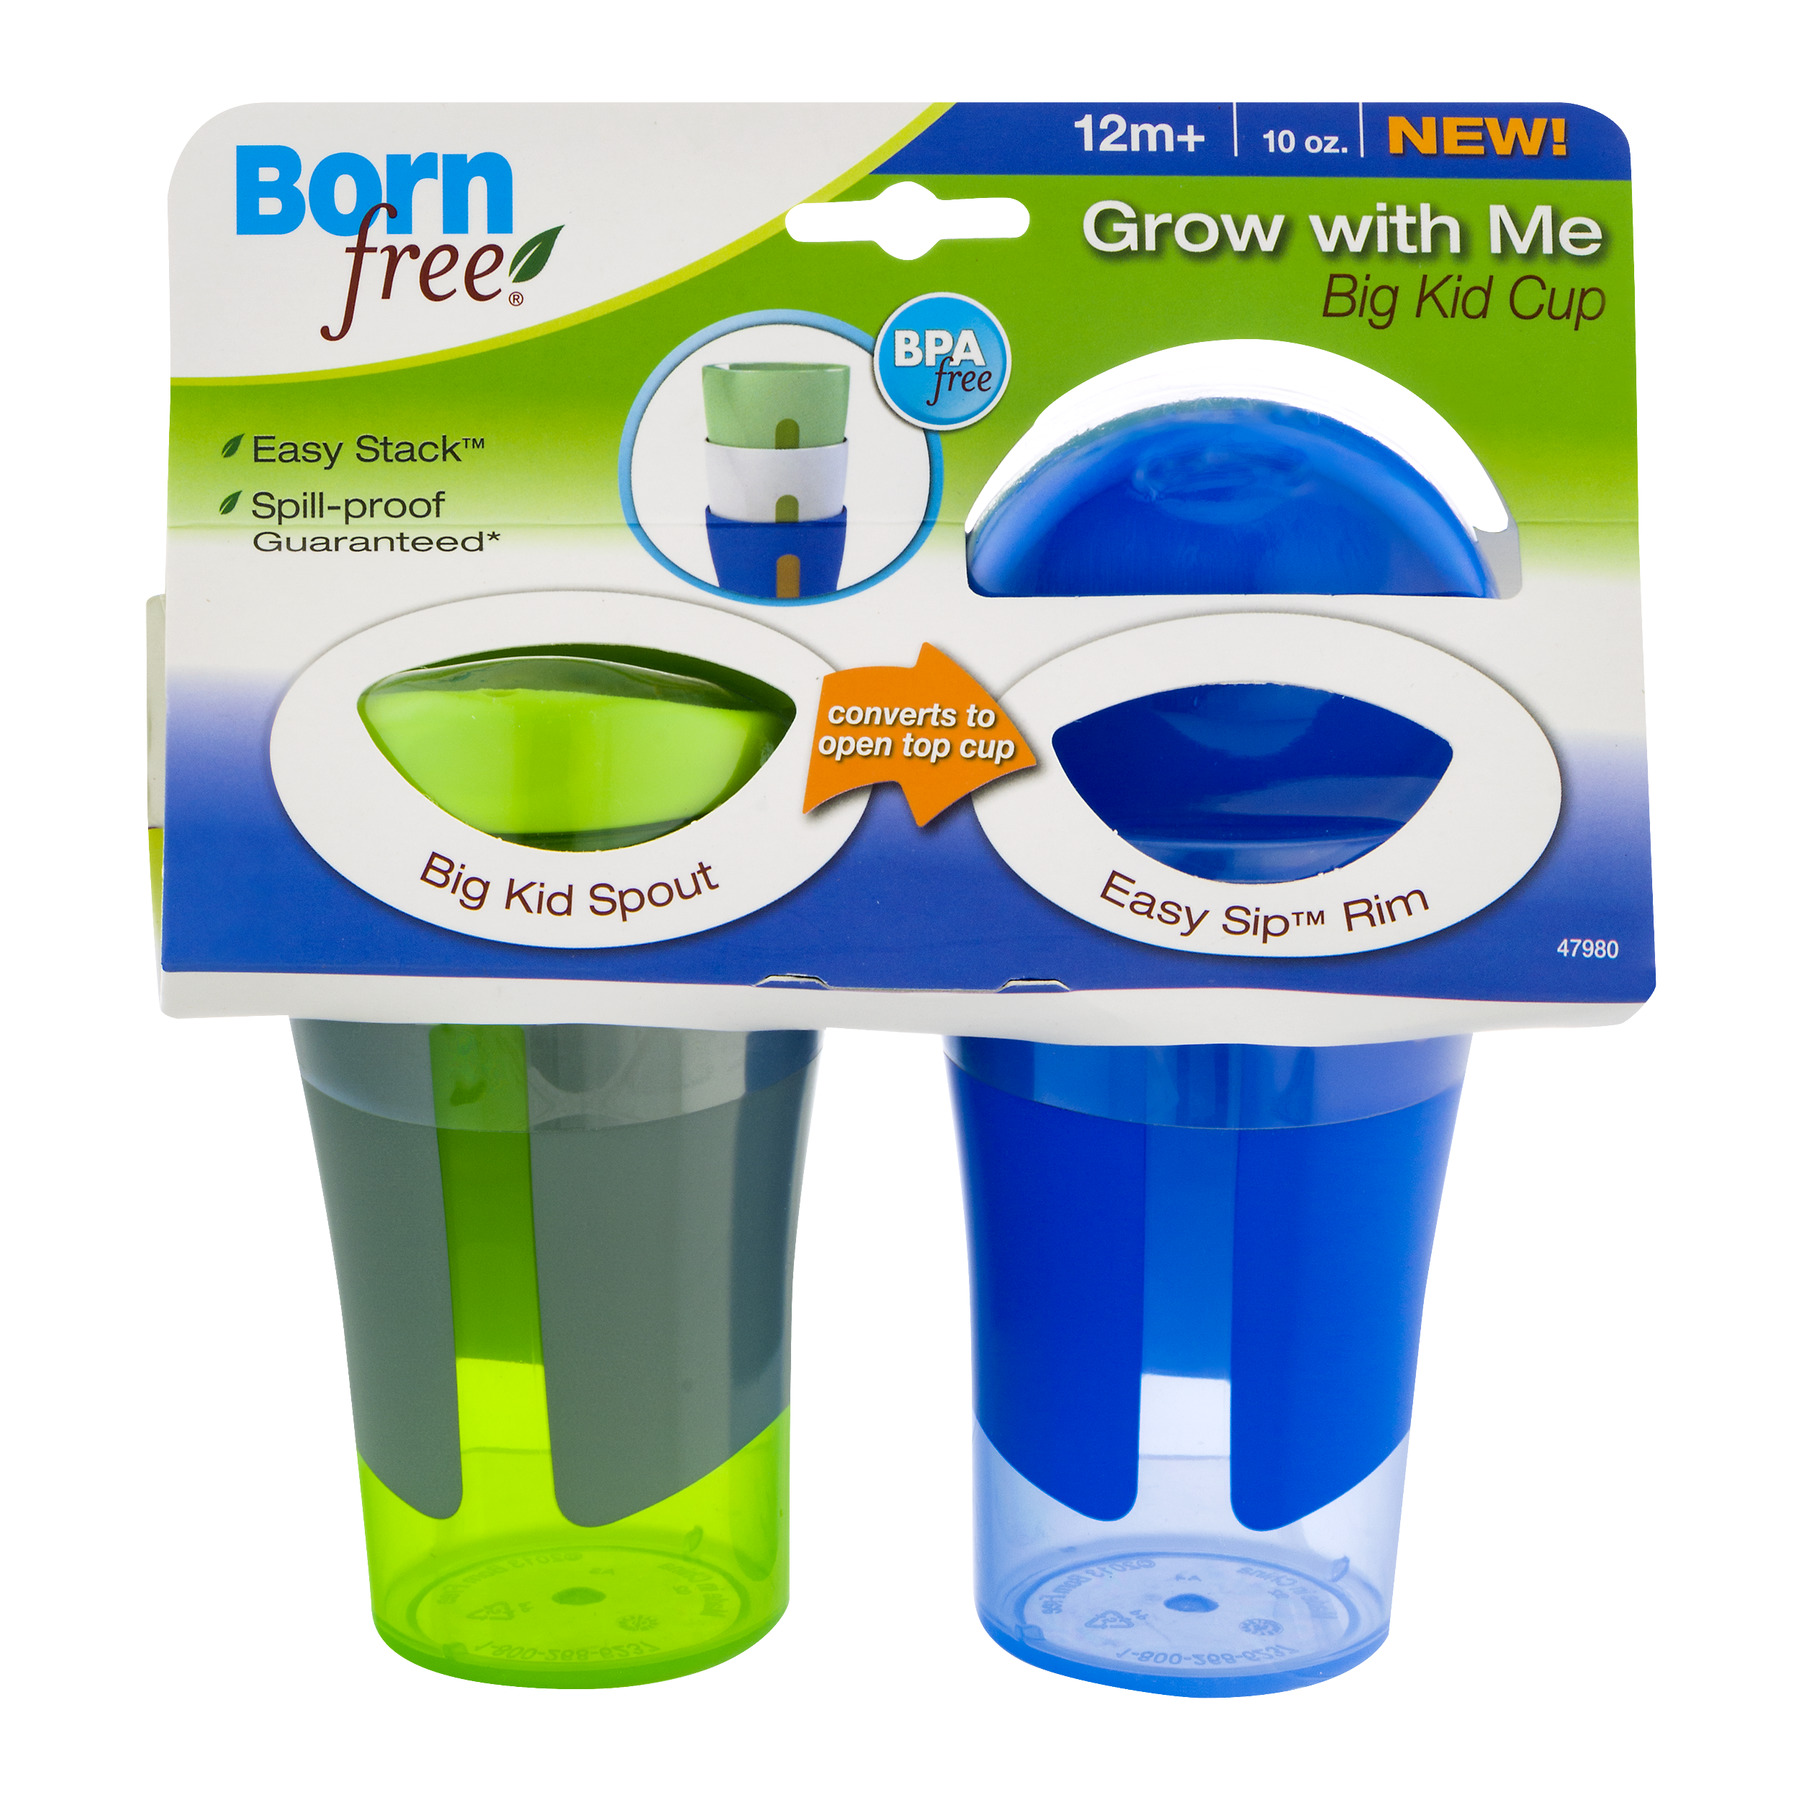 Born Free Grow With Me Big Kid Hard Spout Sippy Cup 2 pack by Born Free